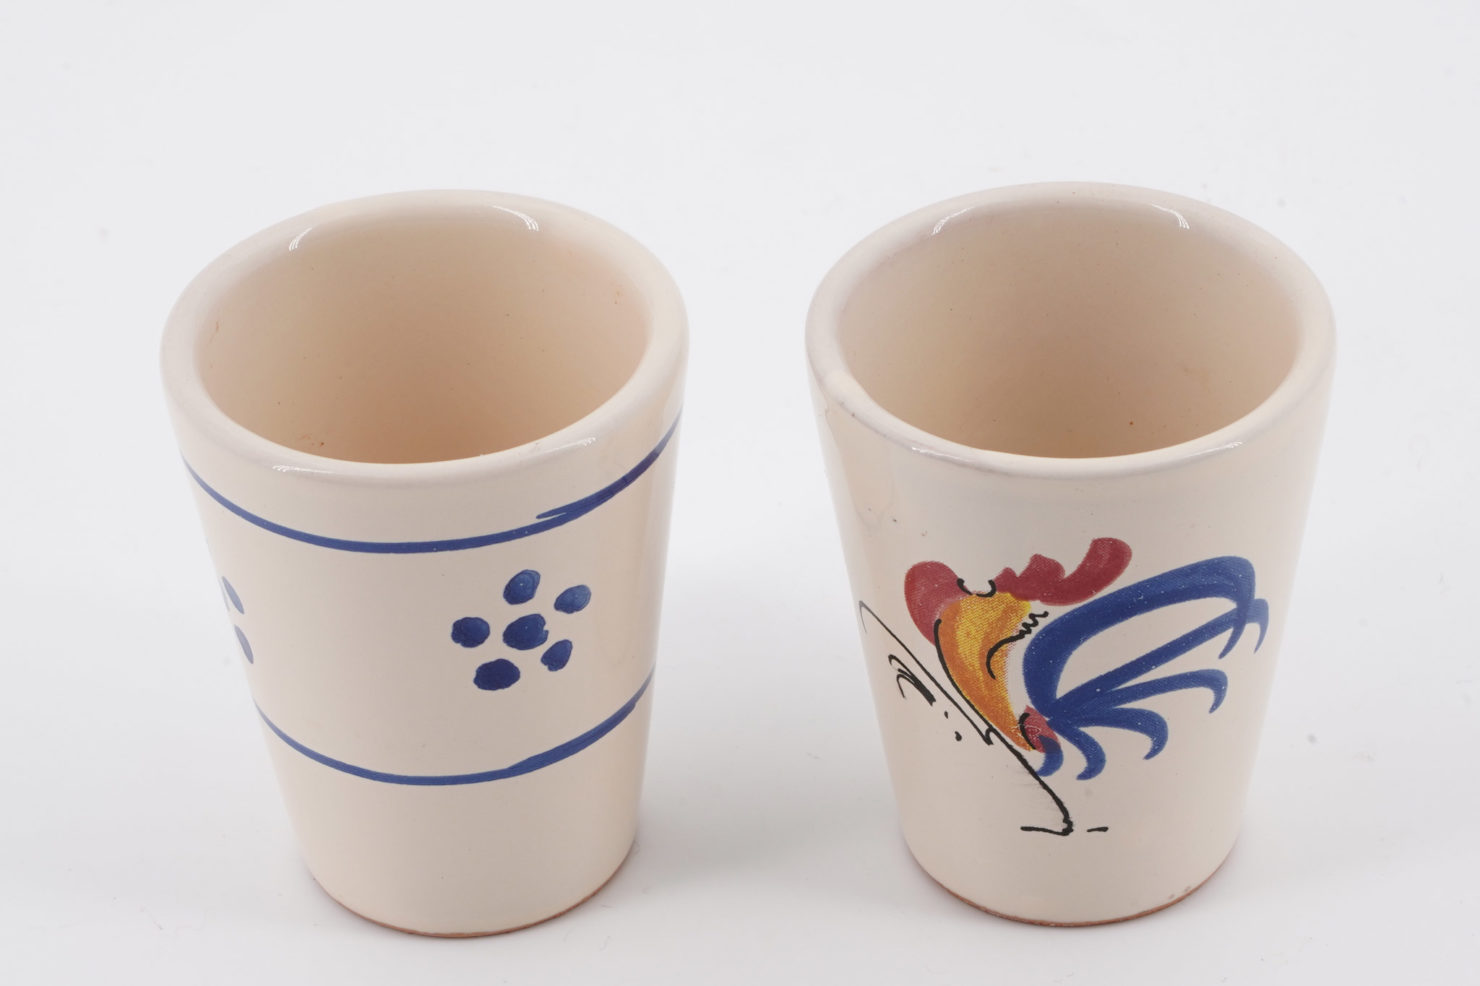 HANDPAINTED CERAMIC VARNISH SMALL GLASS WITH STARS SUGGESTED FOR LIMONCELLO DRINK FRATELLI COLI